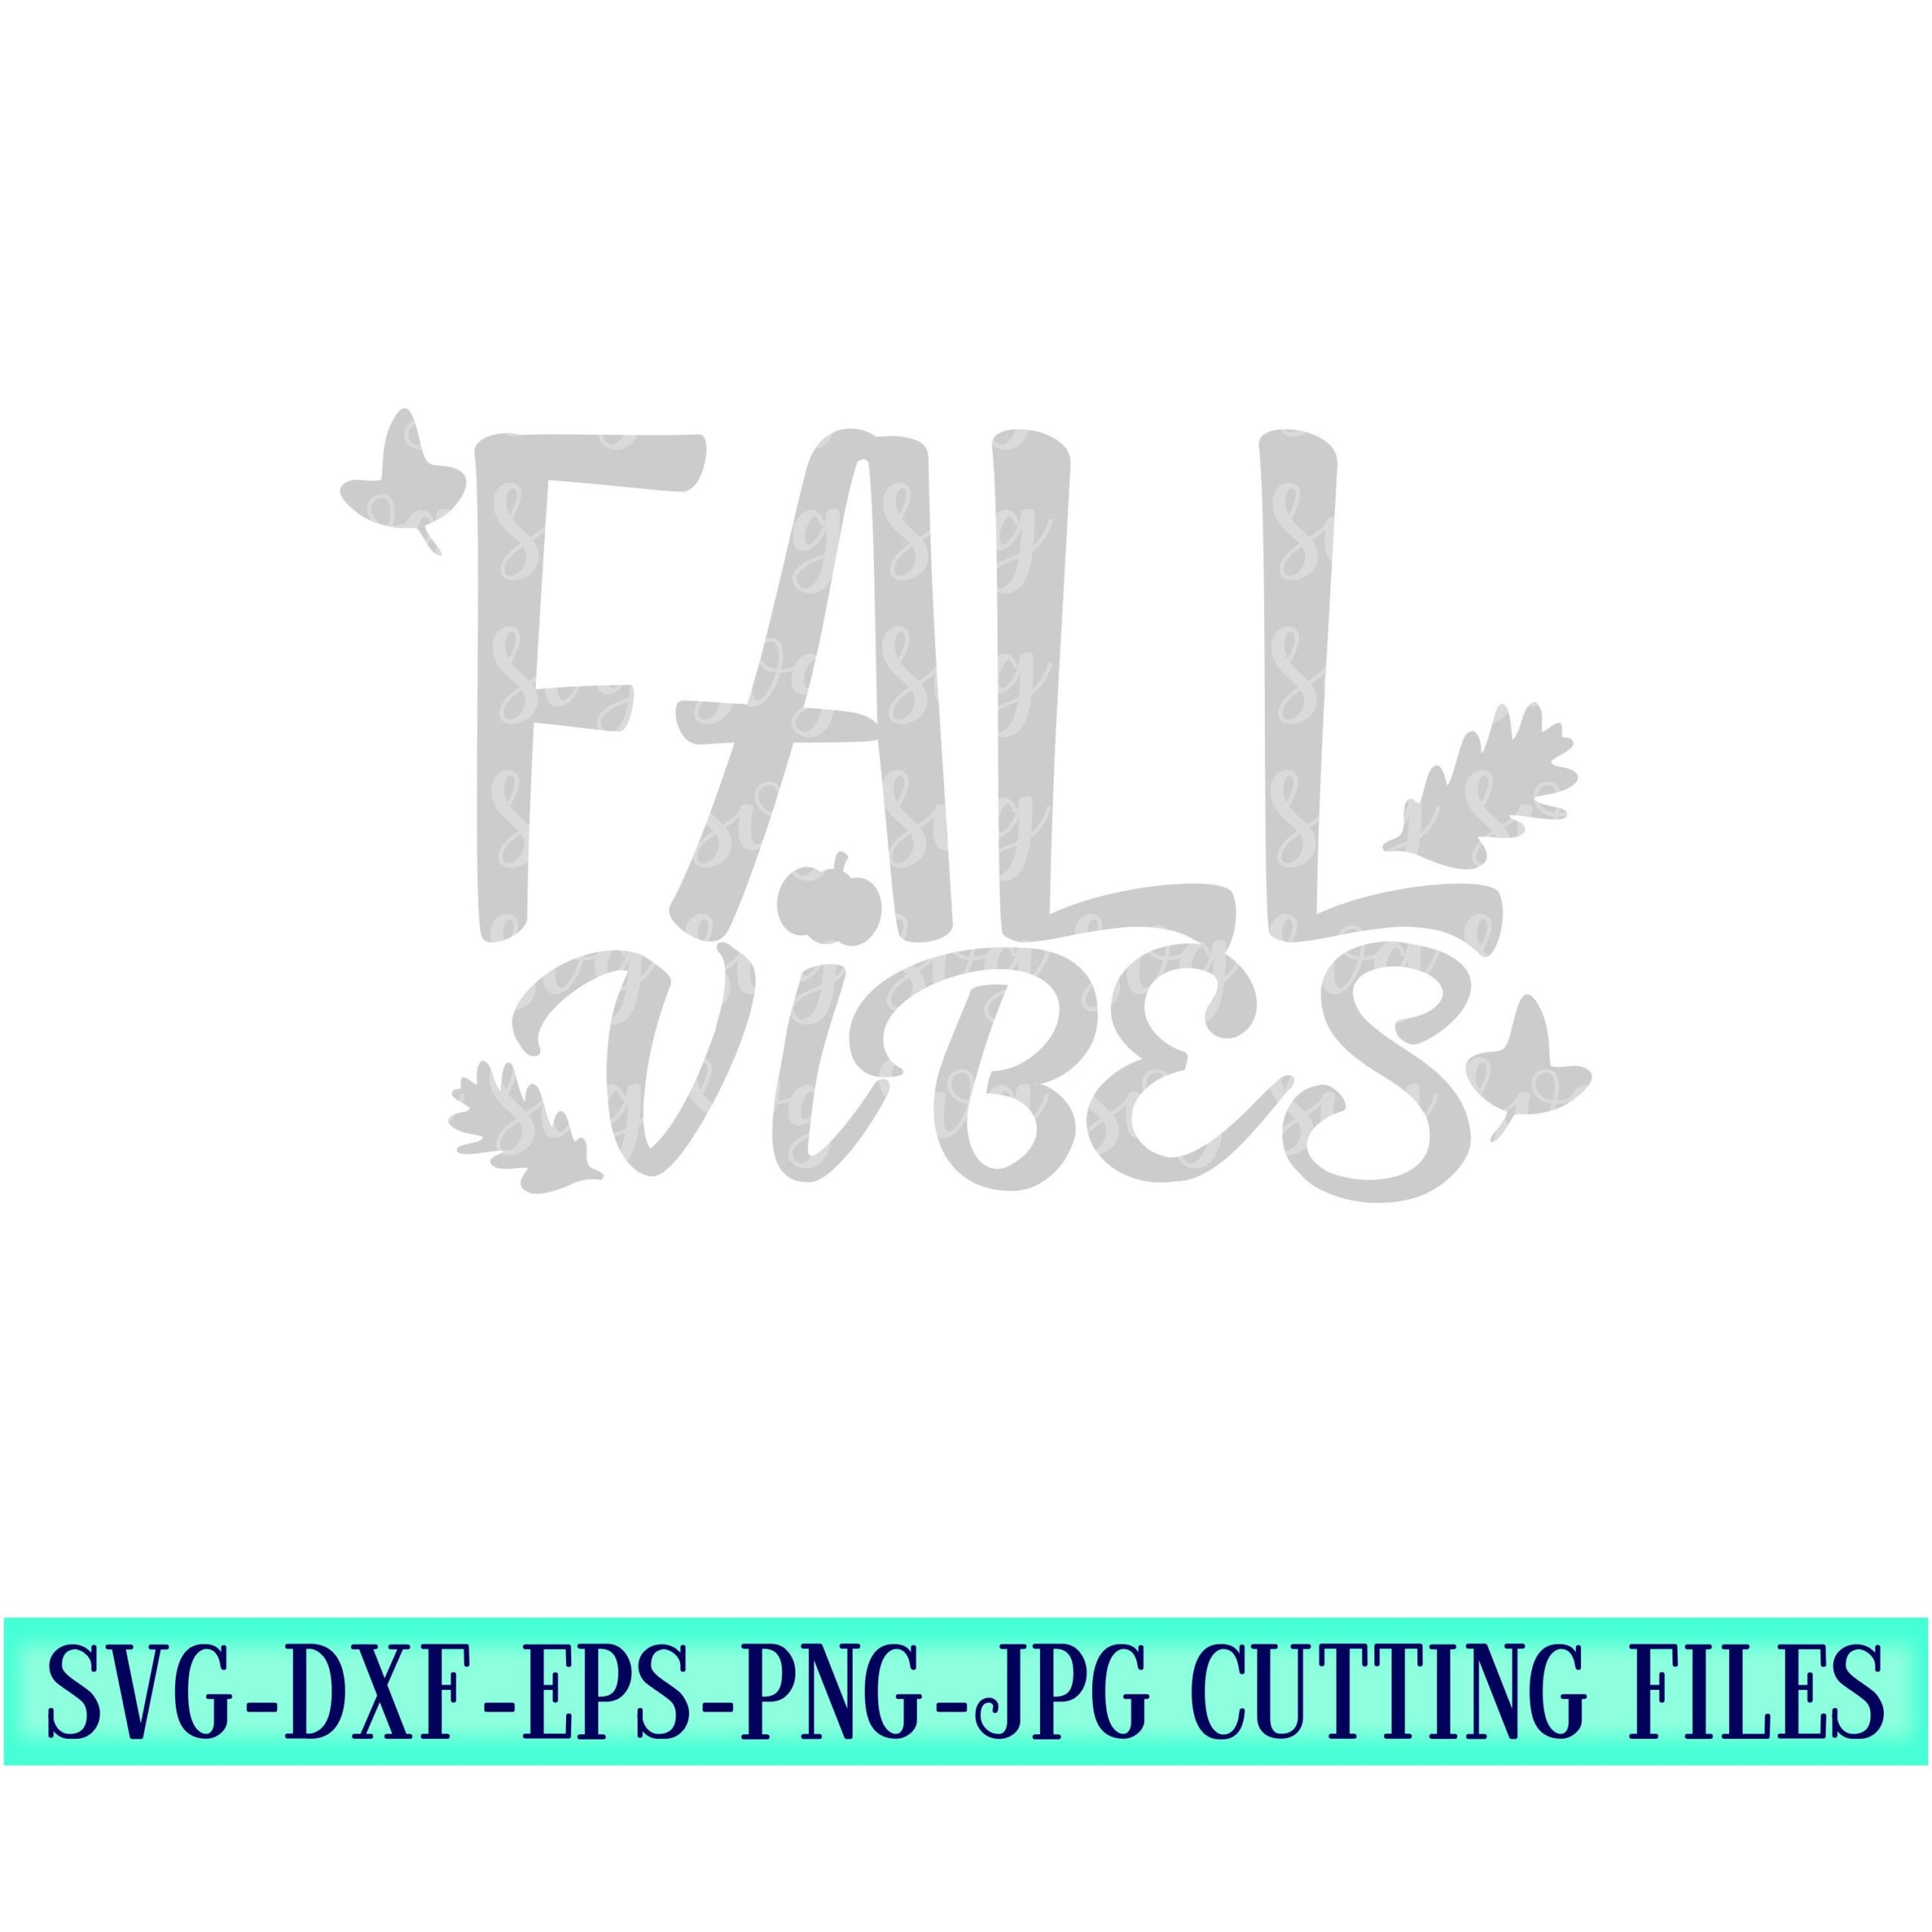 Fall-vibes-svg-fall-svg-falling-leaves-svg-fall-svg-pumpkins-svg-sweater-weather-svg-fall-svg-designcricut-svgsvg-for-mobile-5f6f710f